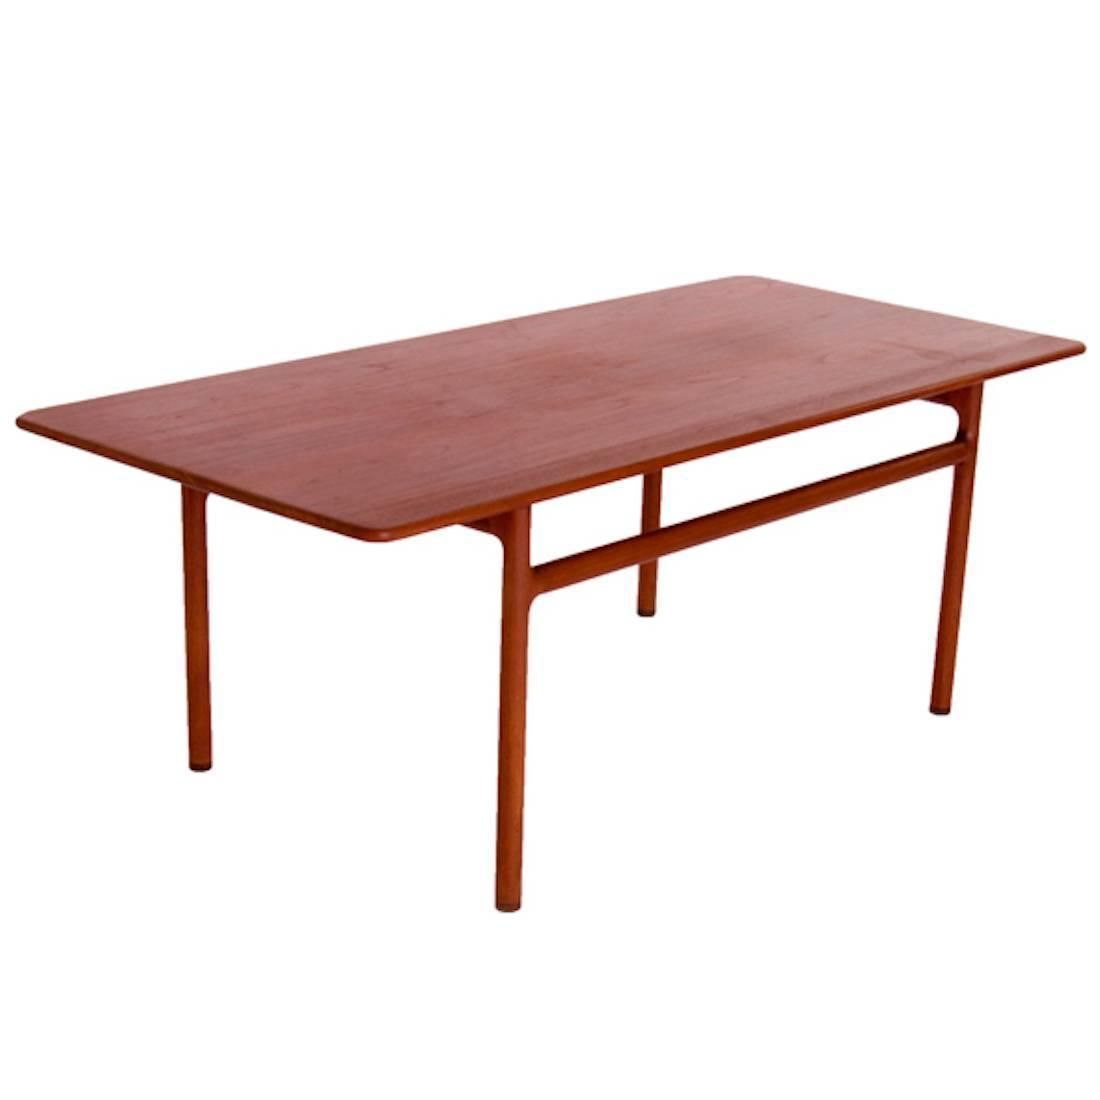 Small Modern Coffee Table 1960s For Sale At 1stdibs: Vintage Danish Modern Coffee Table For Sale At 1stdibs